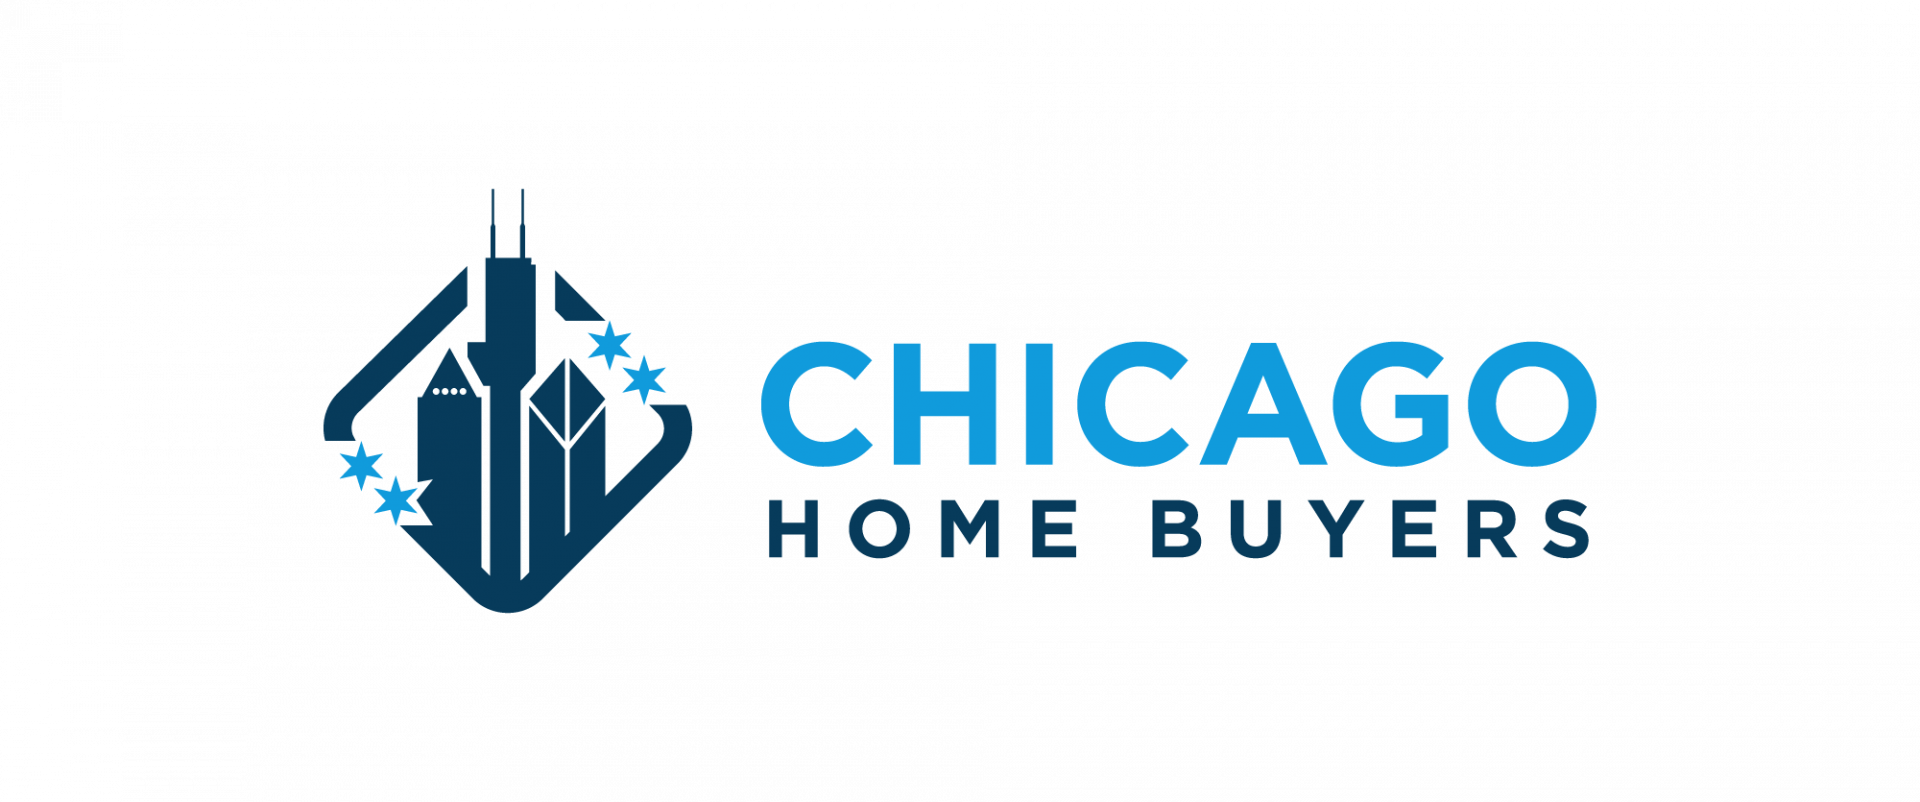 Chicago Home Buyers logo